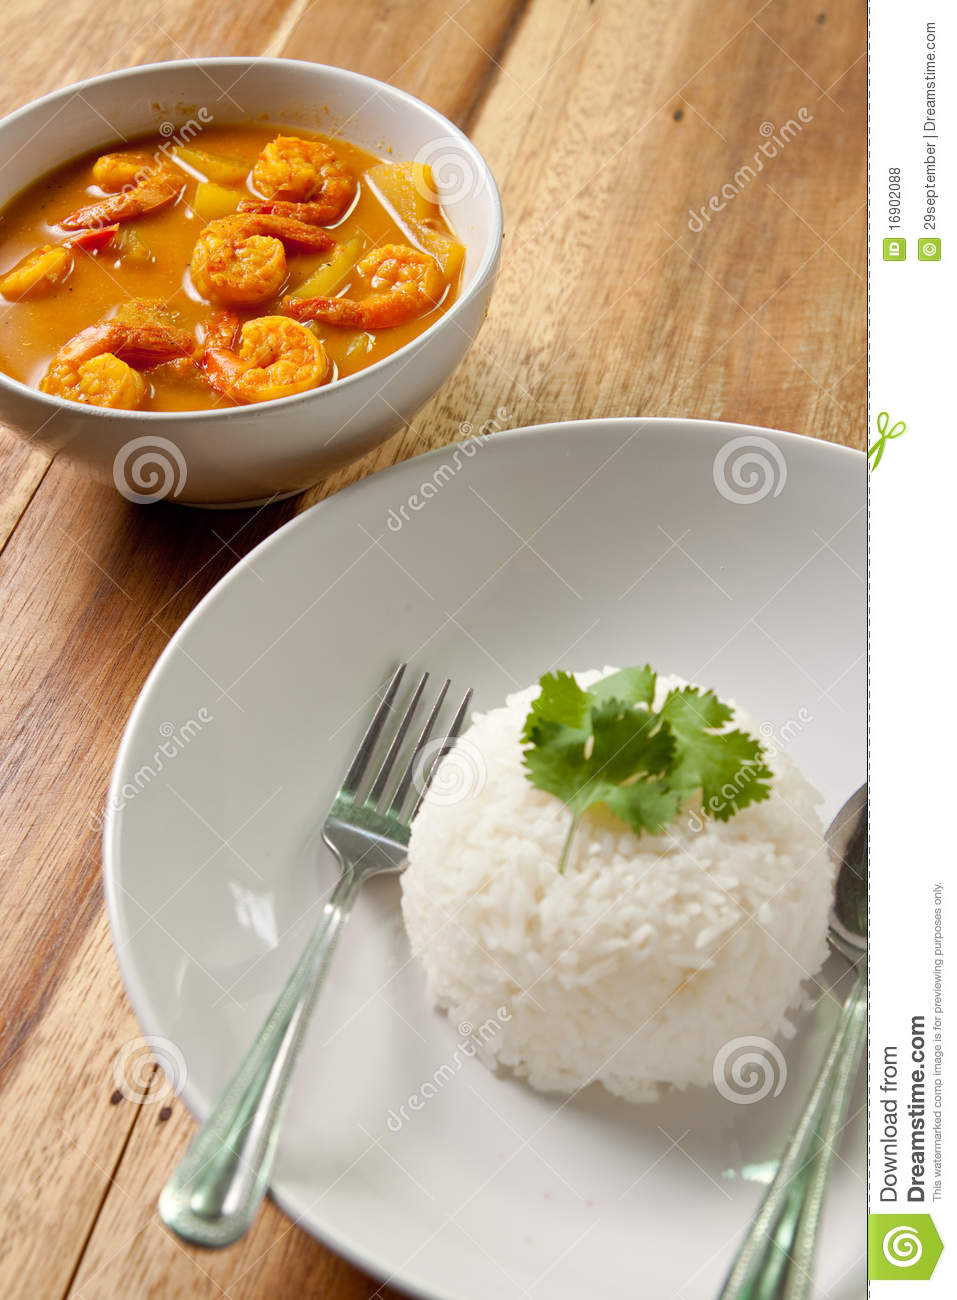 Curryriceräka